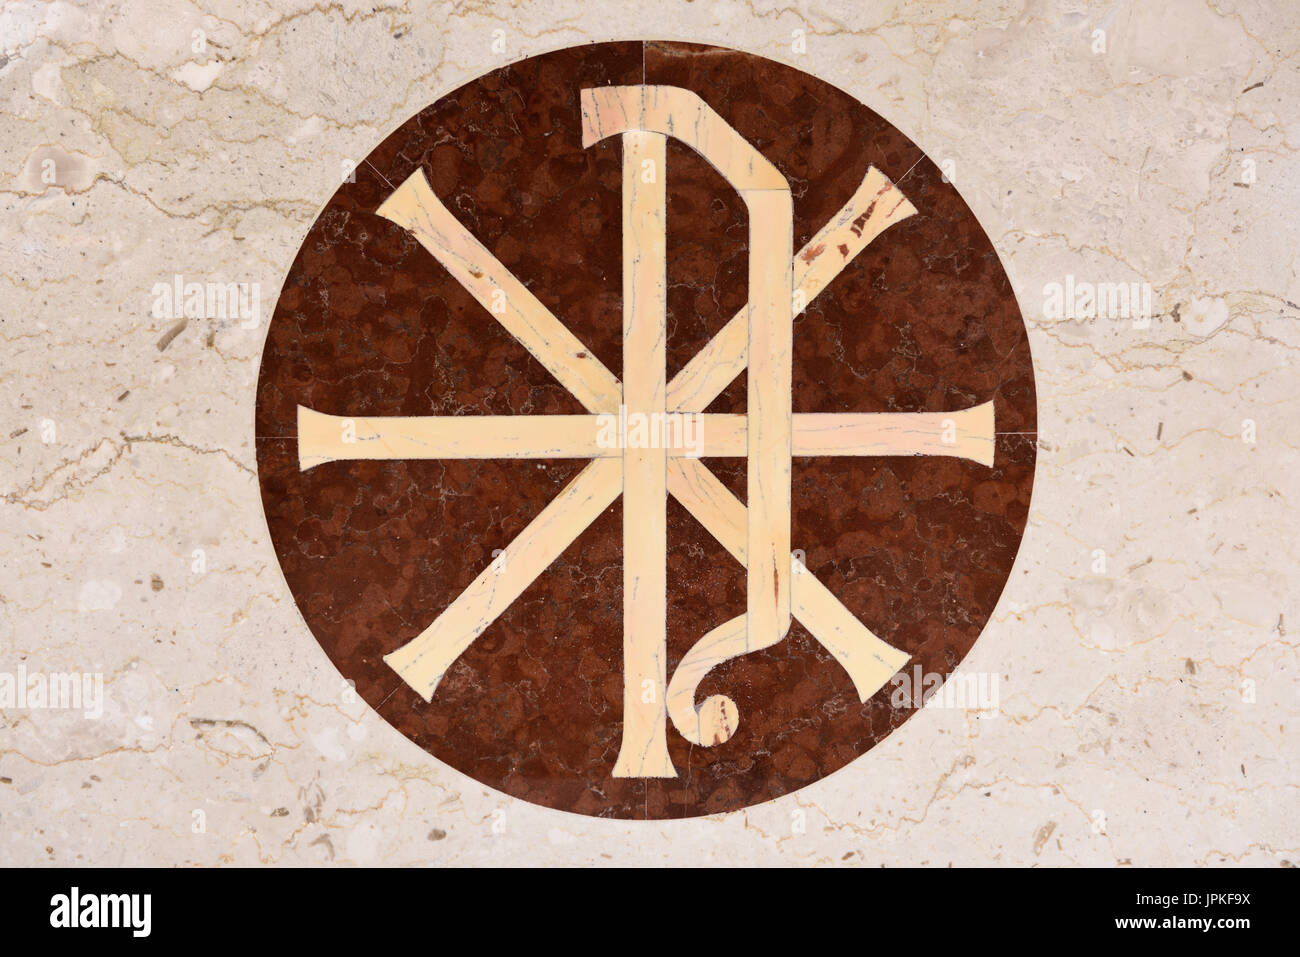 Christian chi rho px symbol for first two greek letters of christ christian chi rho px symbol for first two greek letters of christ on inlaid marble of catholic church altar toronto buycottarizona